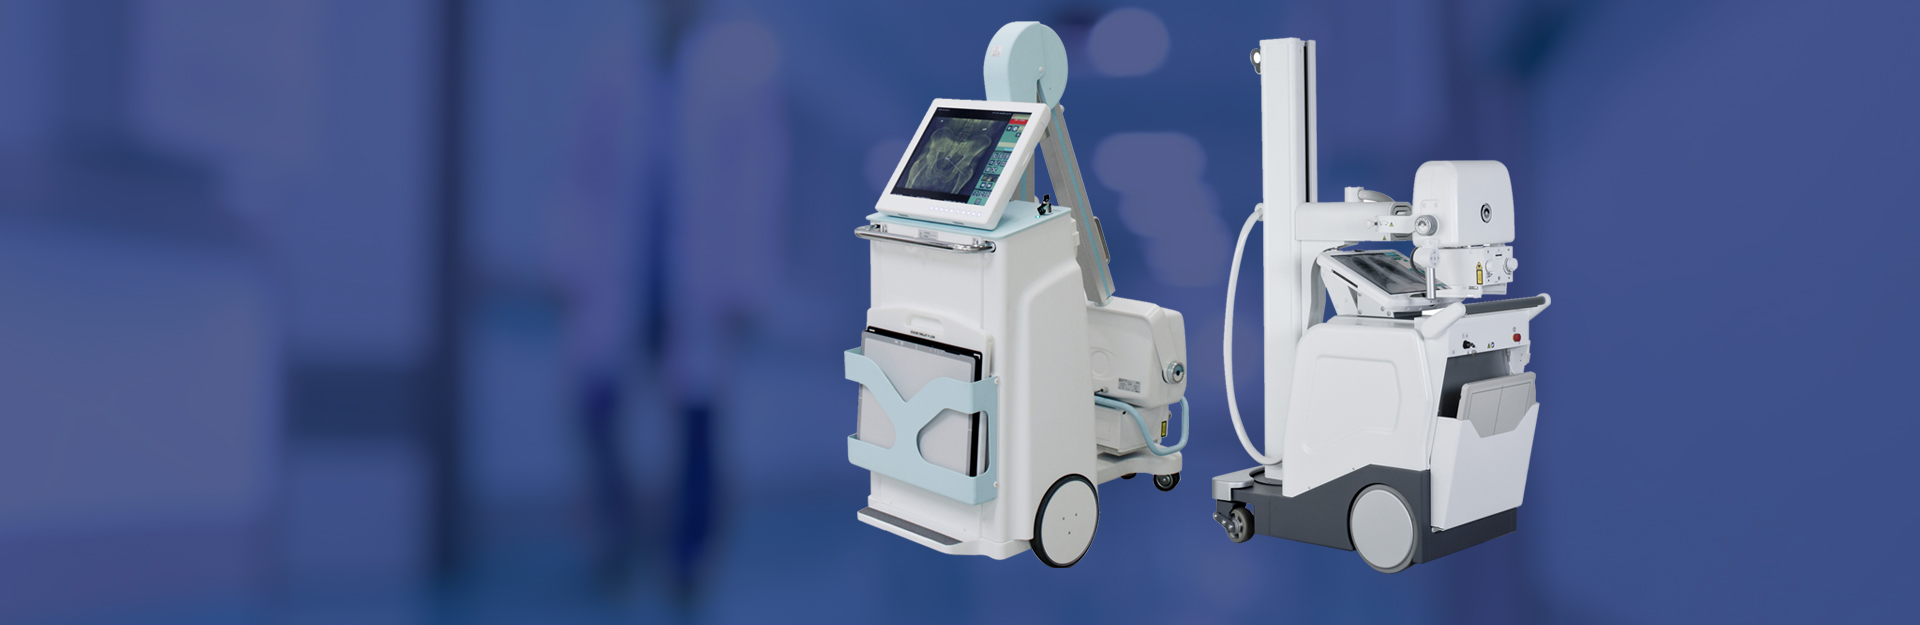 Portable-Mobile-X-ray-Machines - Wolverson Xray Limited